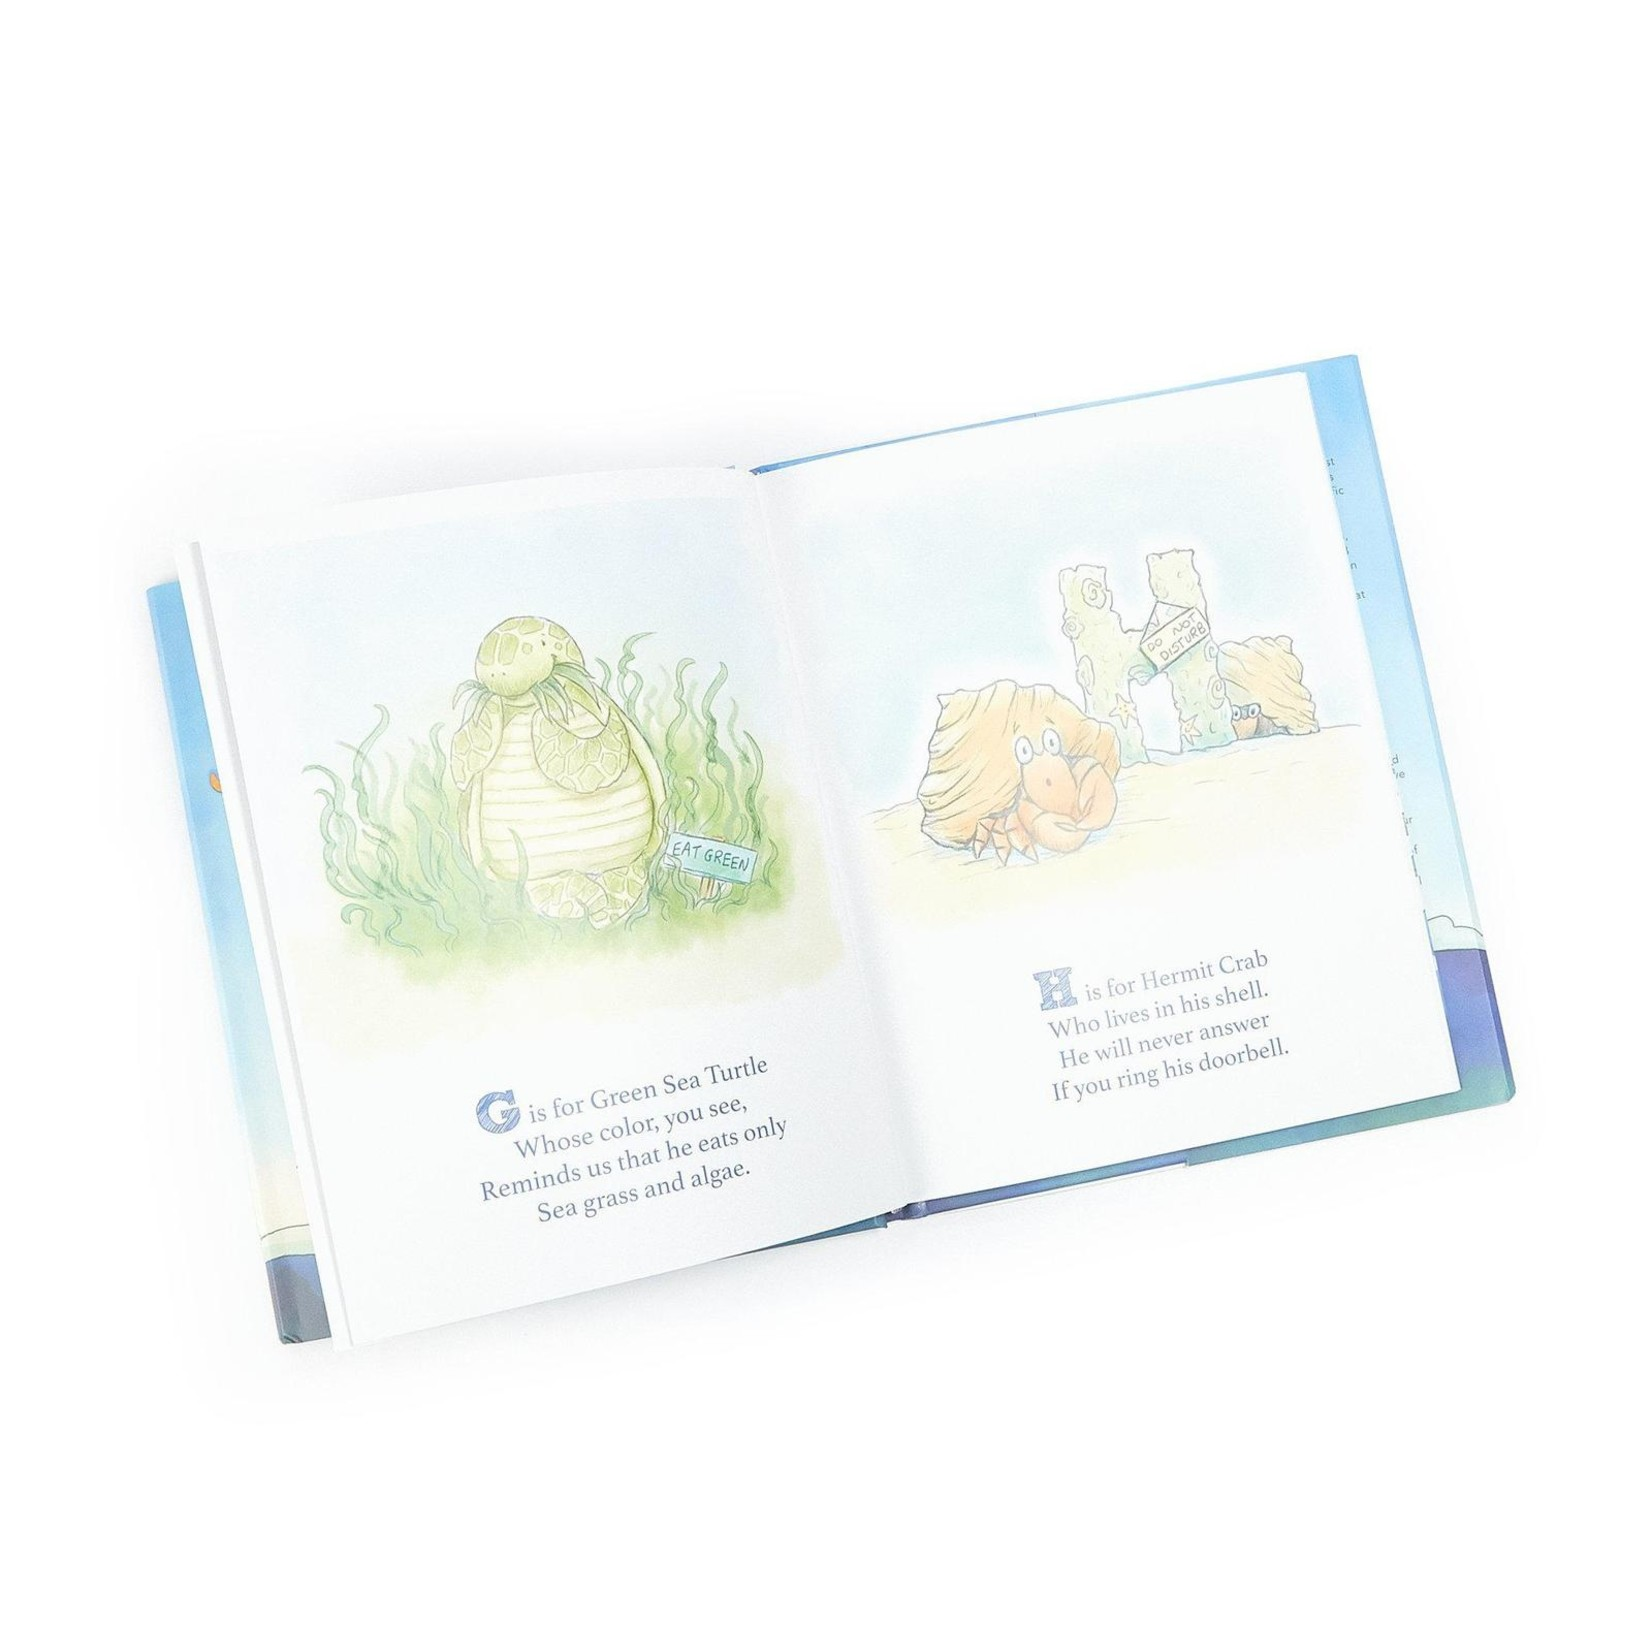 Bunnies By the Bay Avery the Aviator Explores the Sea A to Z